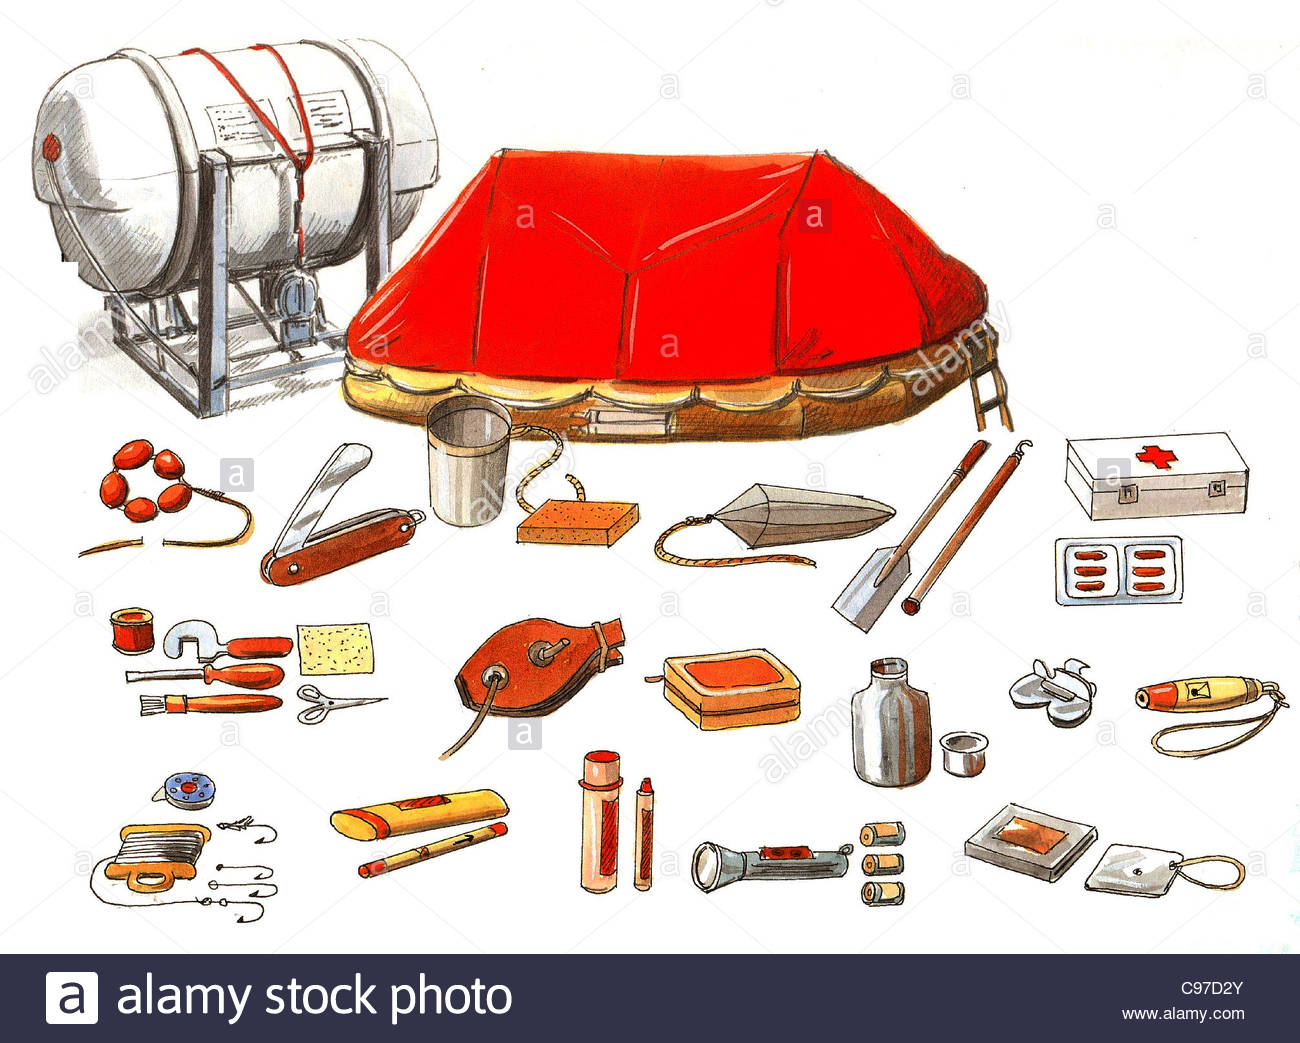 Liferaft Finishings Series Ships E. Kleinert ship Ships shipping shipping s - Stock Image